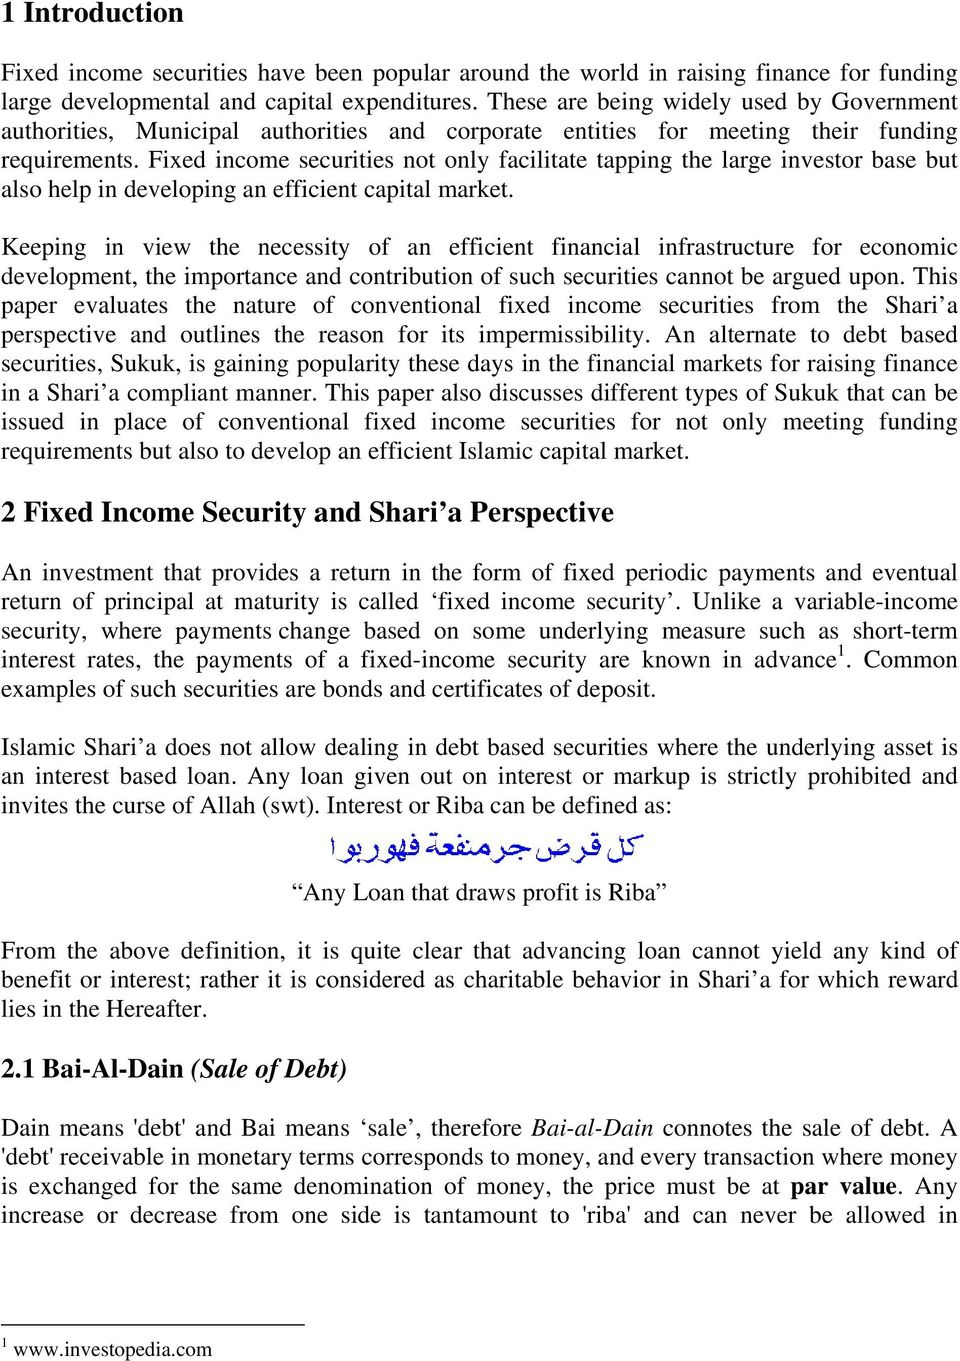 Fixed Income Securities Shari A Perspective Pdf